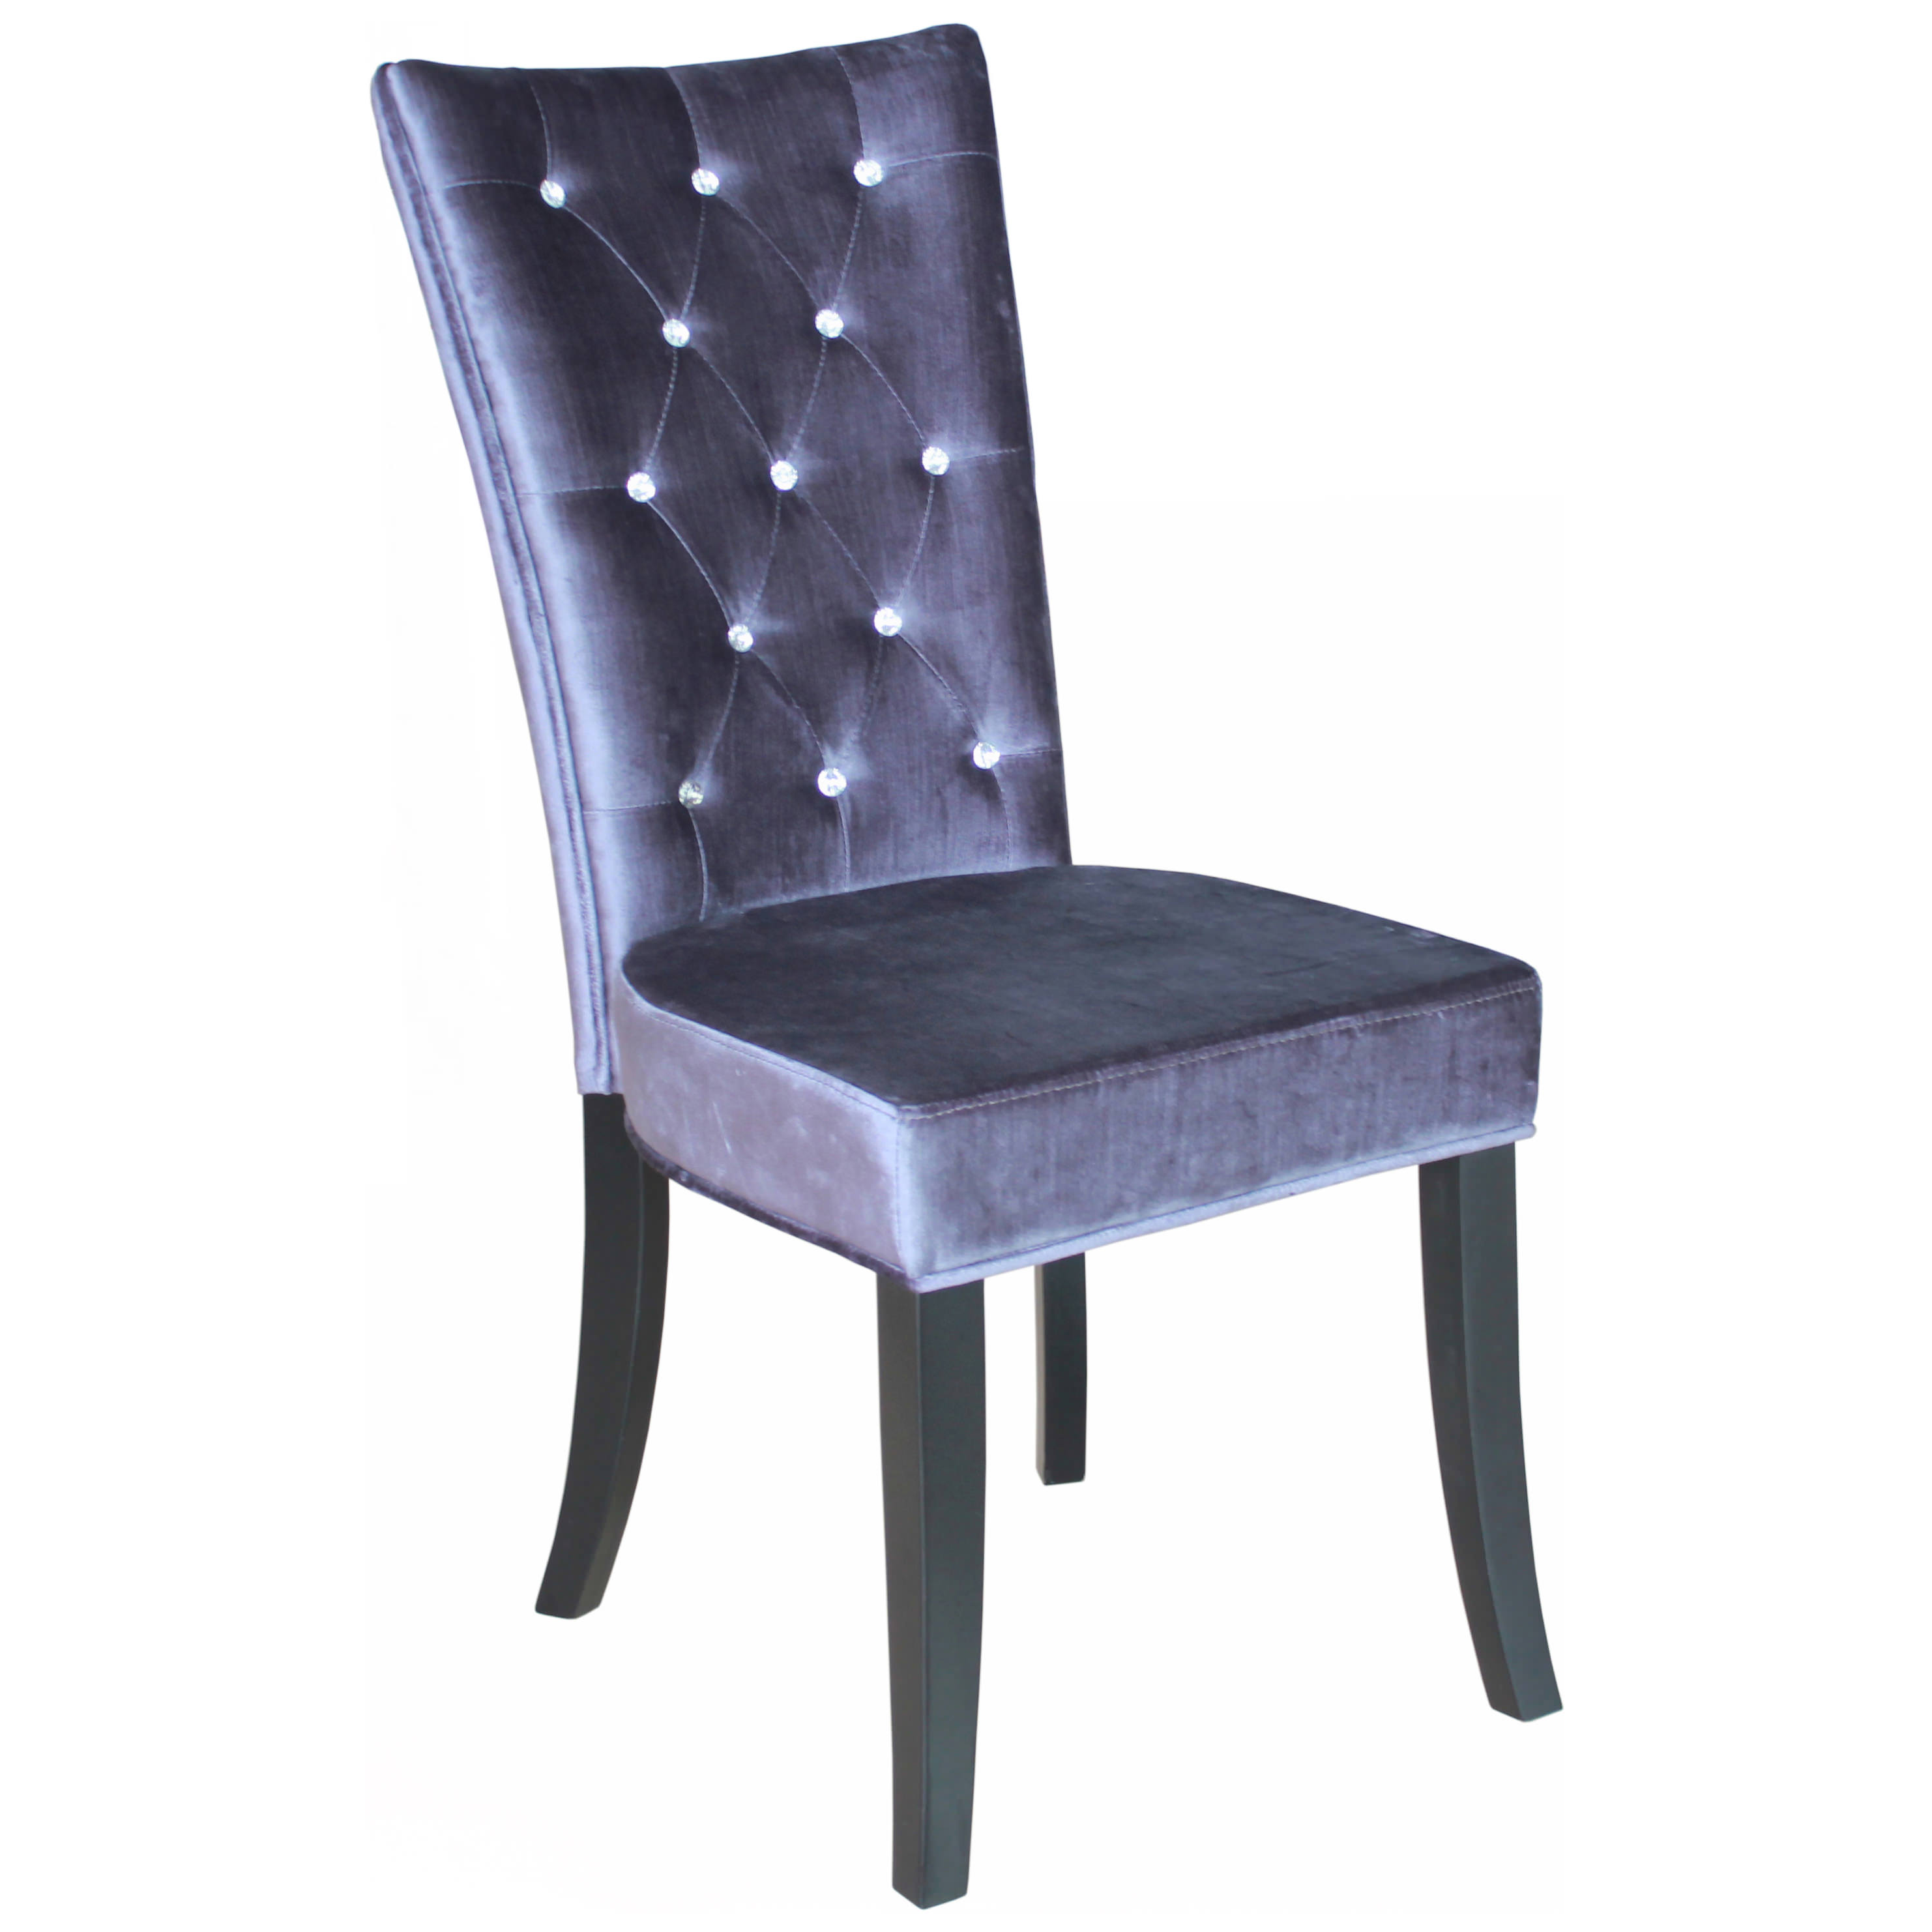 Pack Of 2 Velvet Style Fabric Dining Seat Chair Black Silver Purple